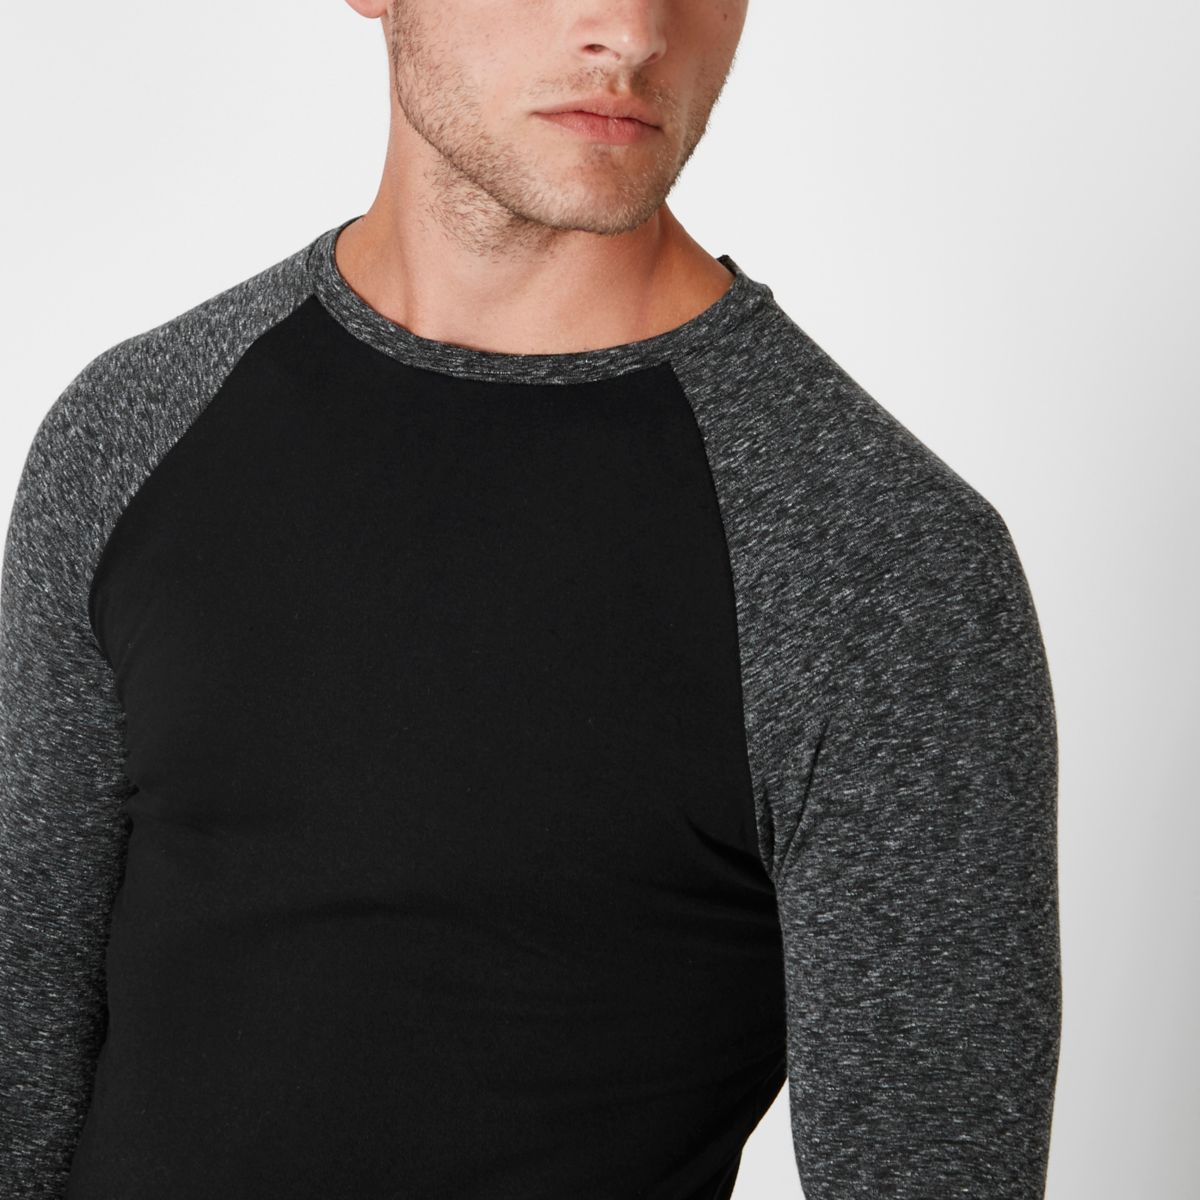 Black long raglan sleeve muscle fit T-shirt